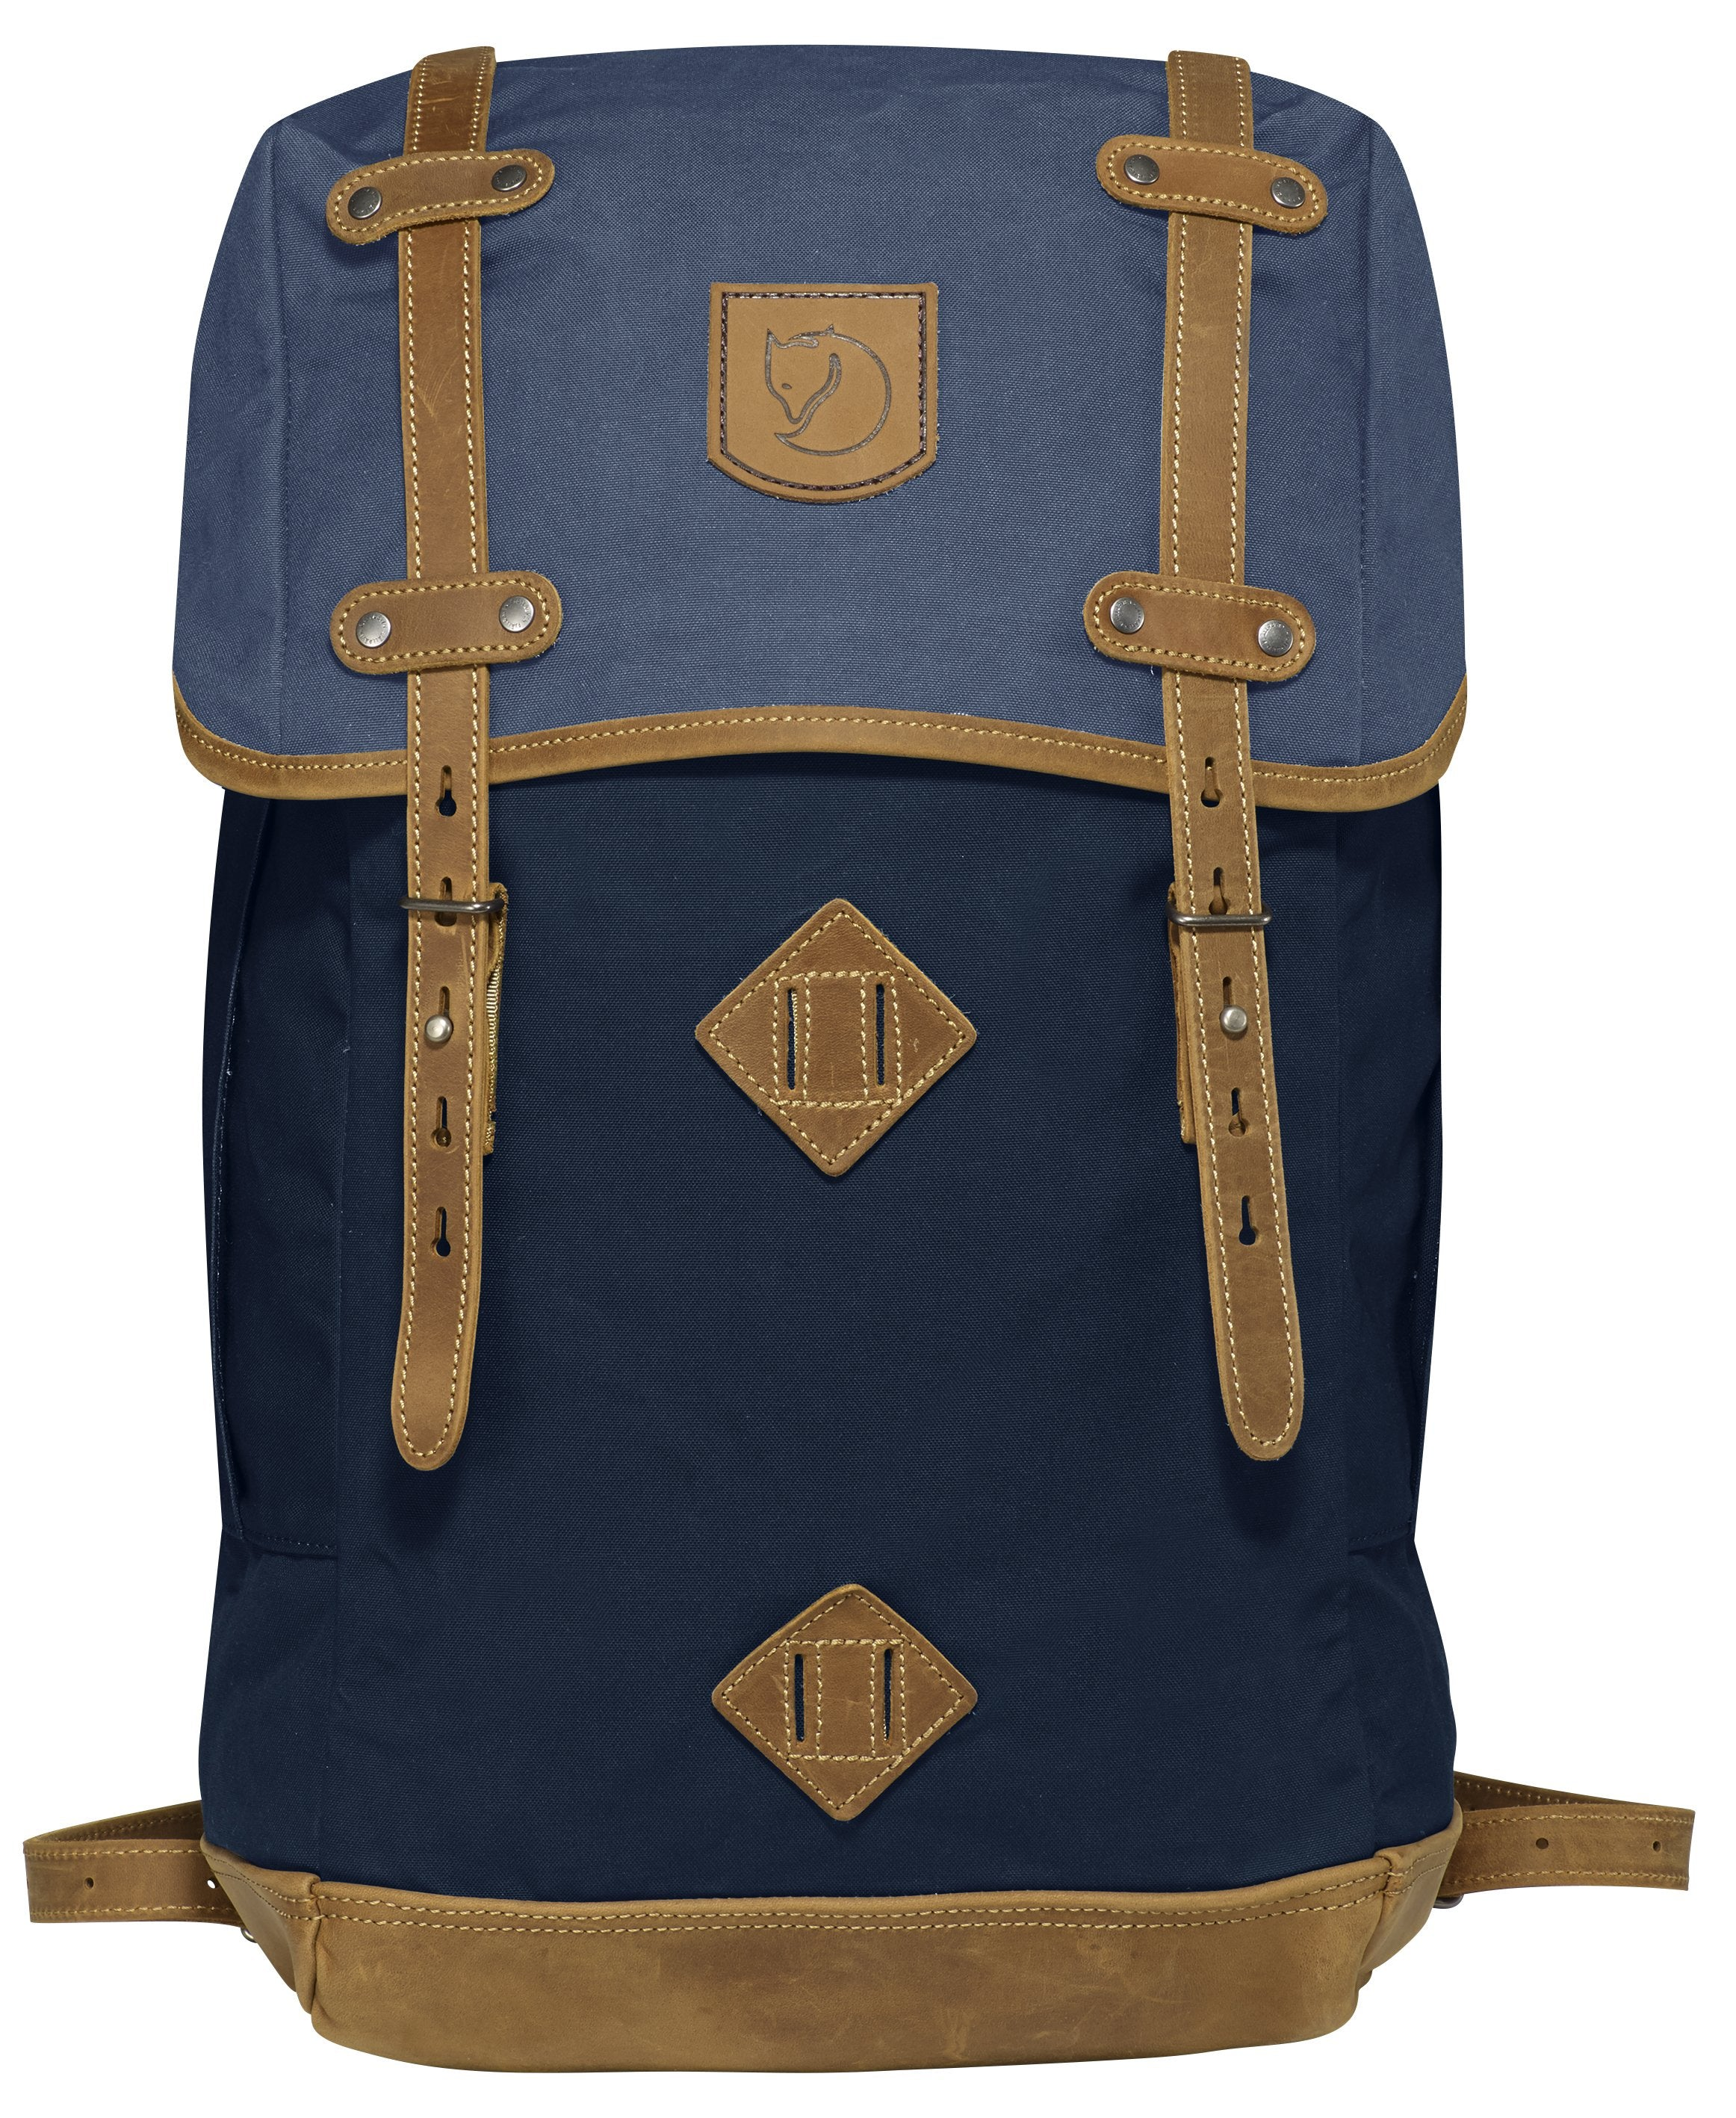 Ruckack No.21 Large is a great large backpack for hiking – Fjällräven 0824bbd3bbcf6